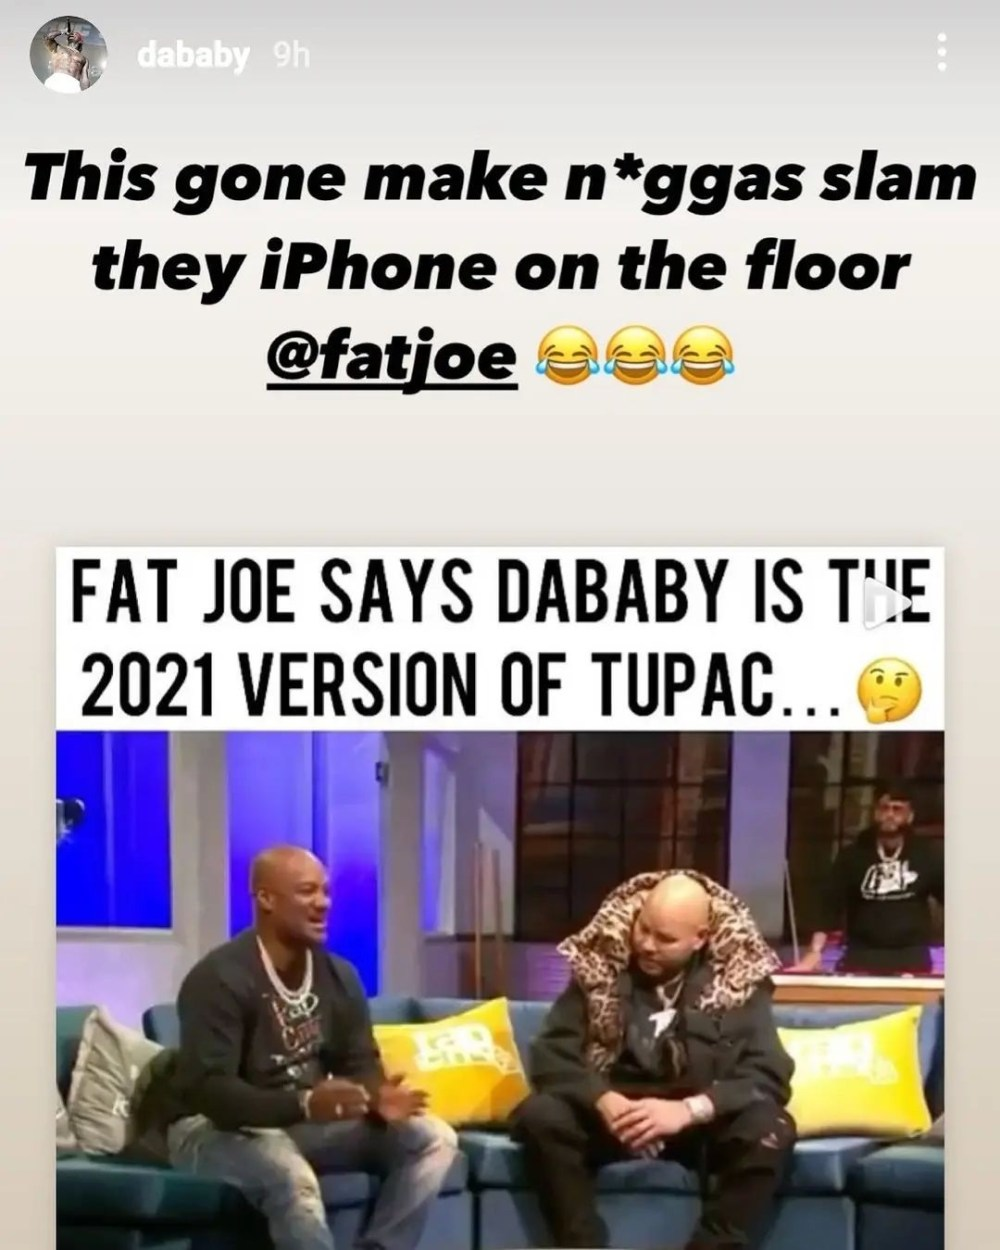 Fat Joe says DaBaby is 2021's Tupac and DaBaby agrees